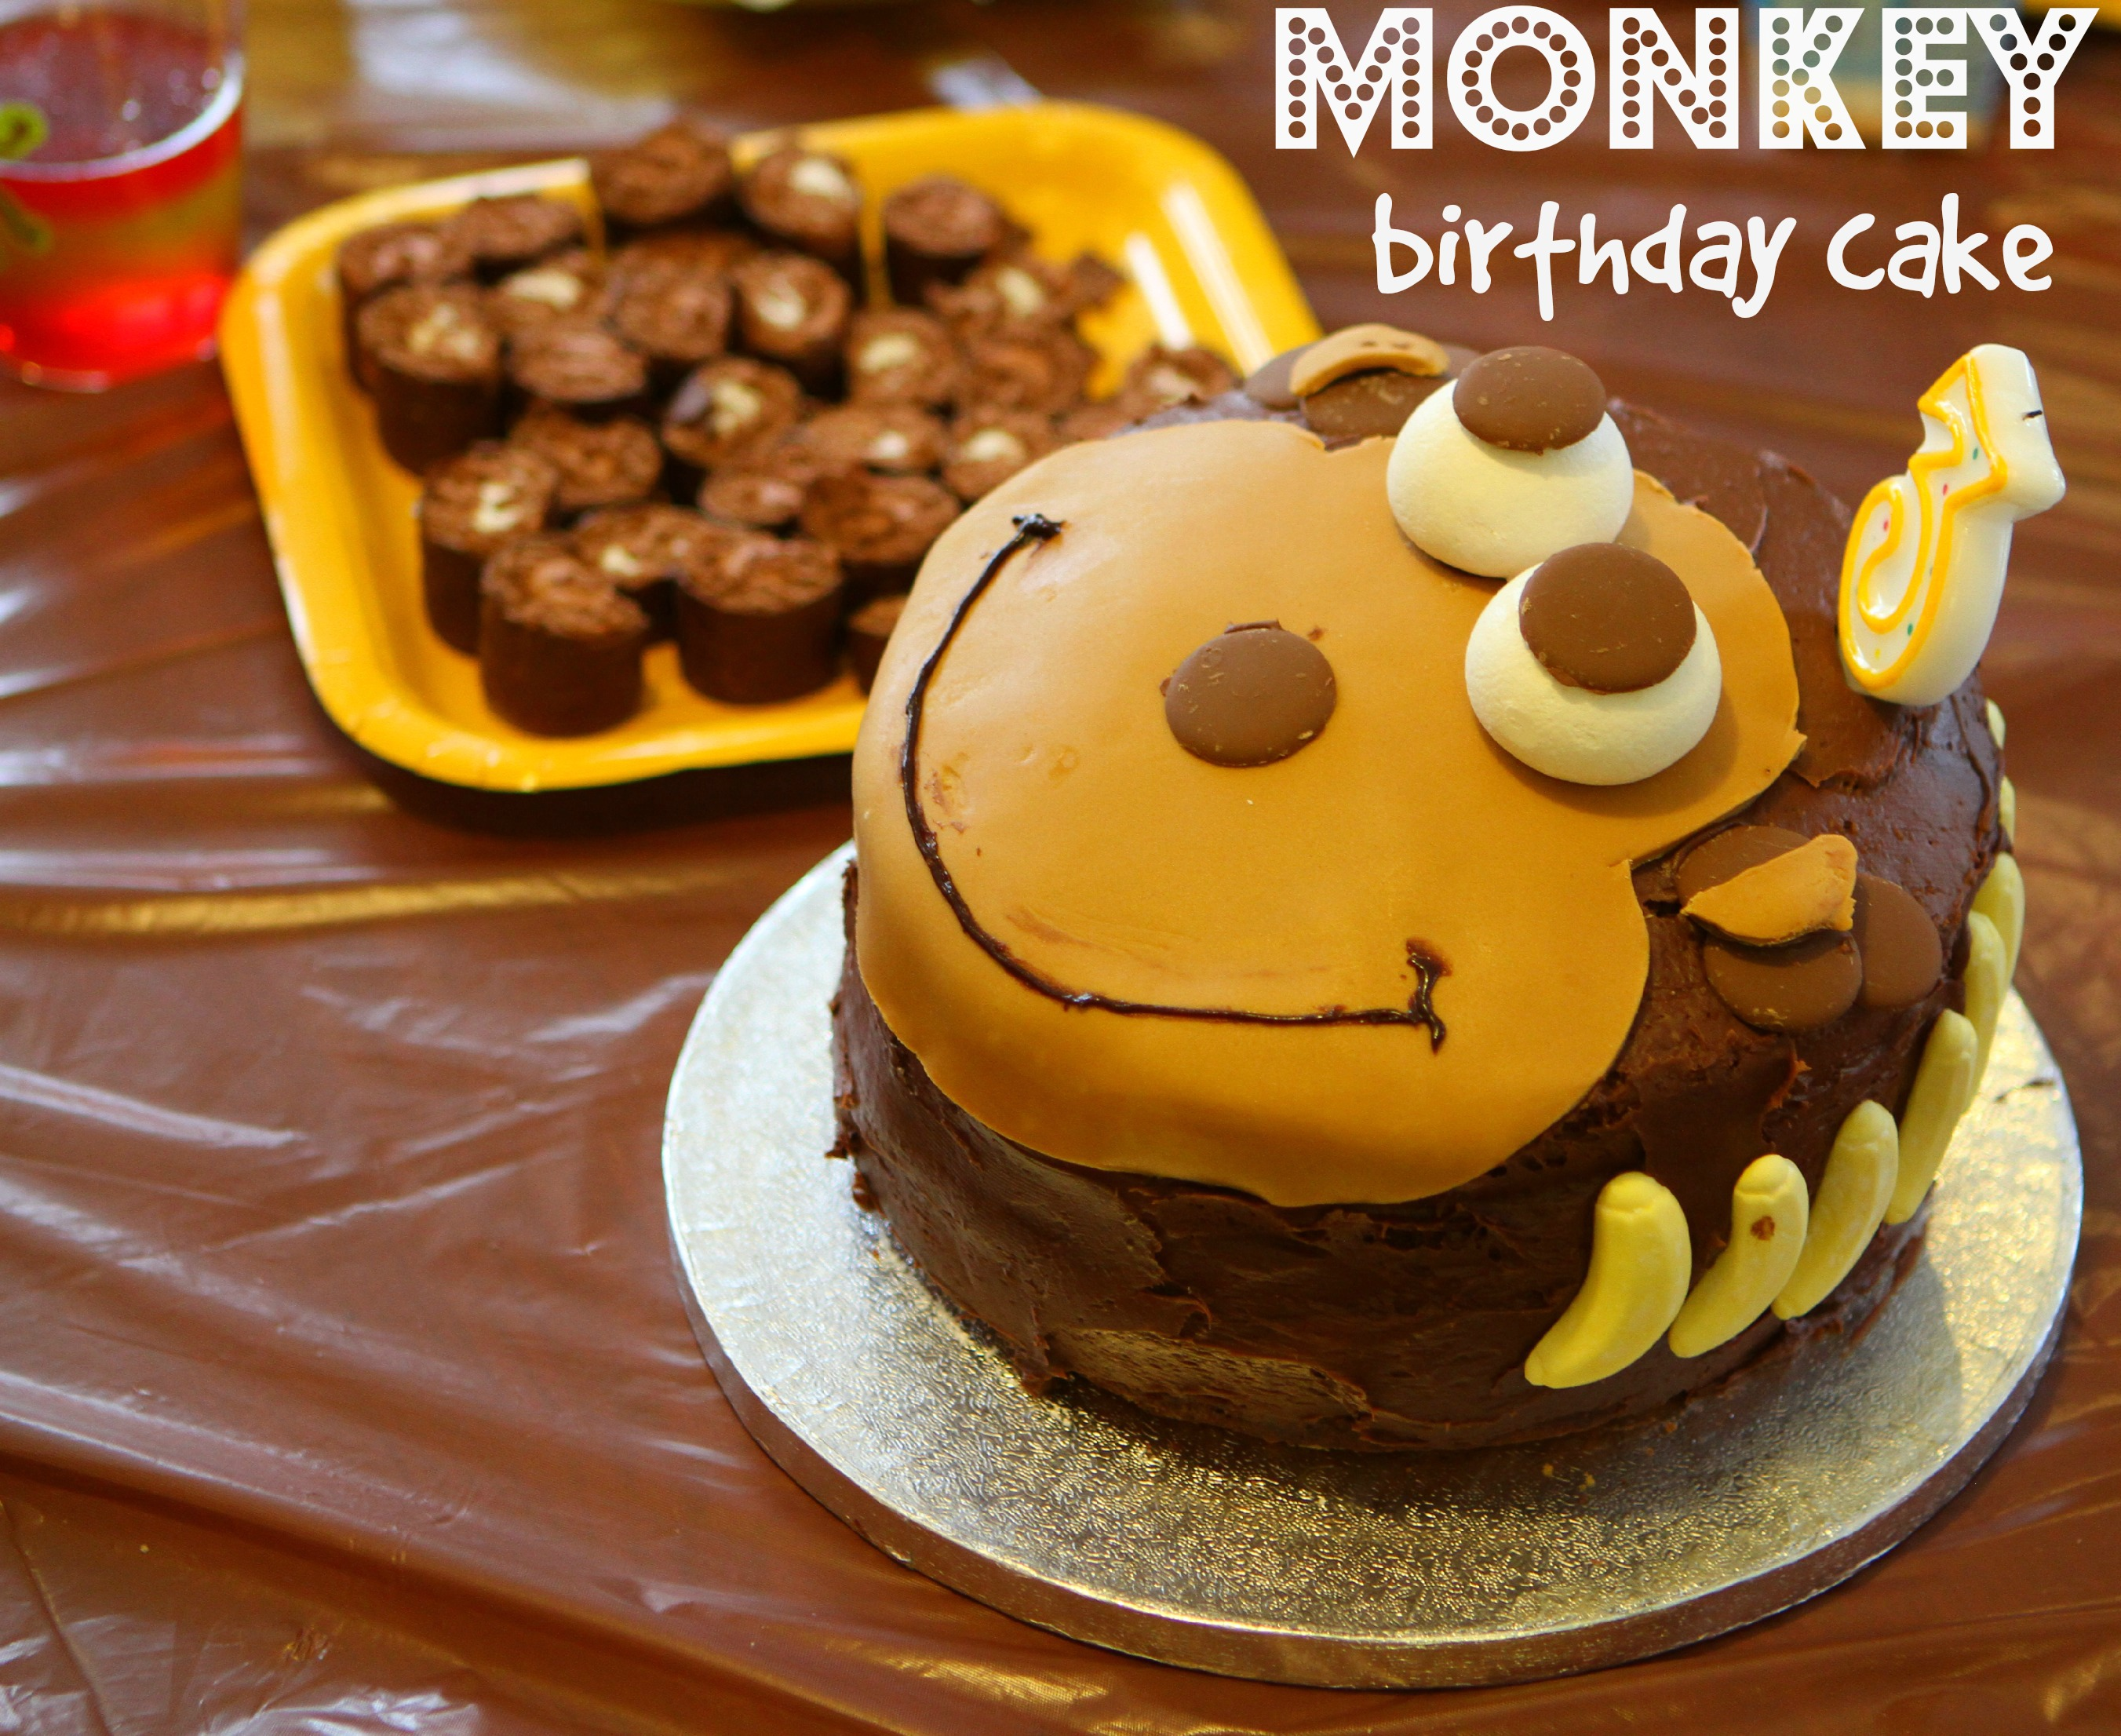 A Monkey Cake & Birthday Party